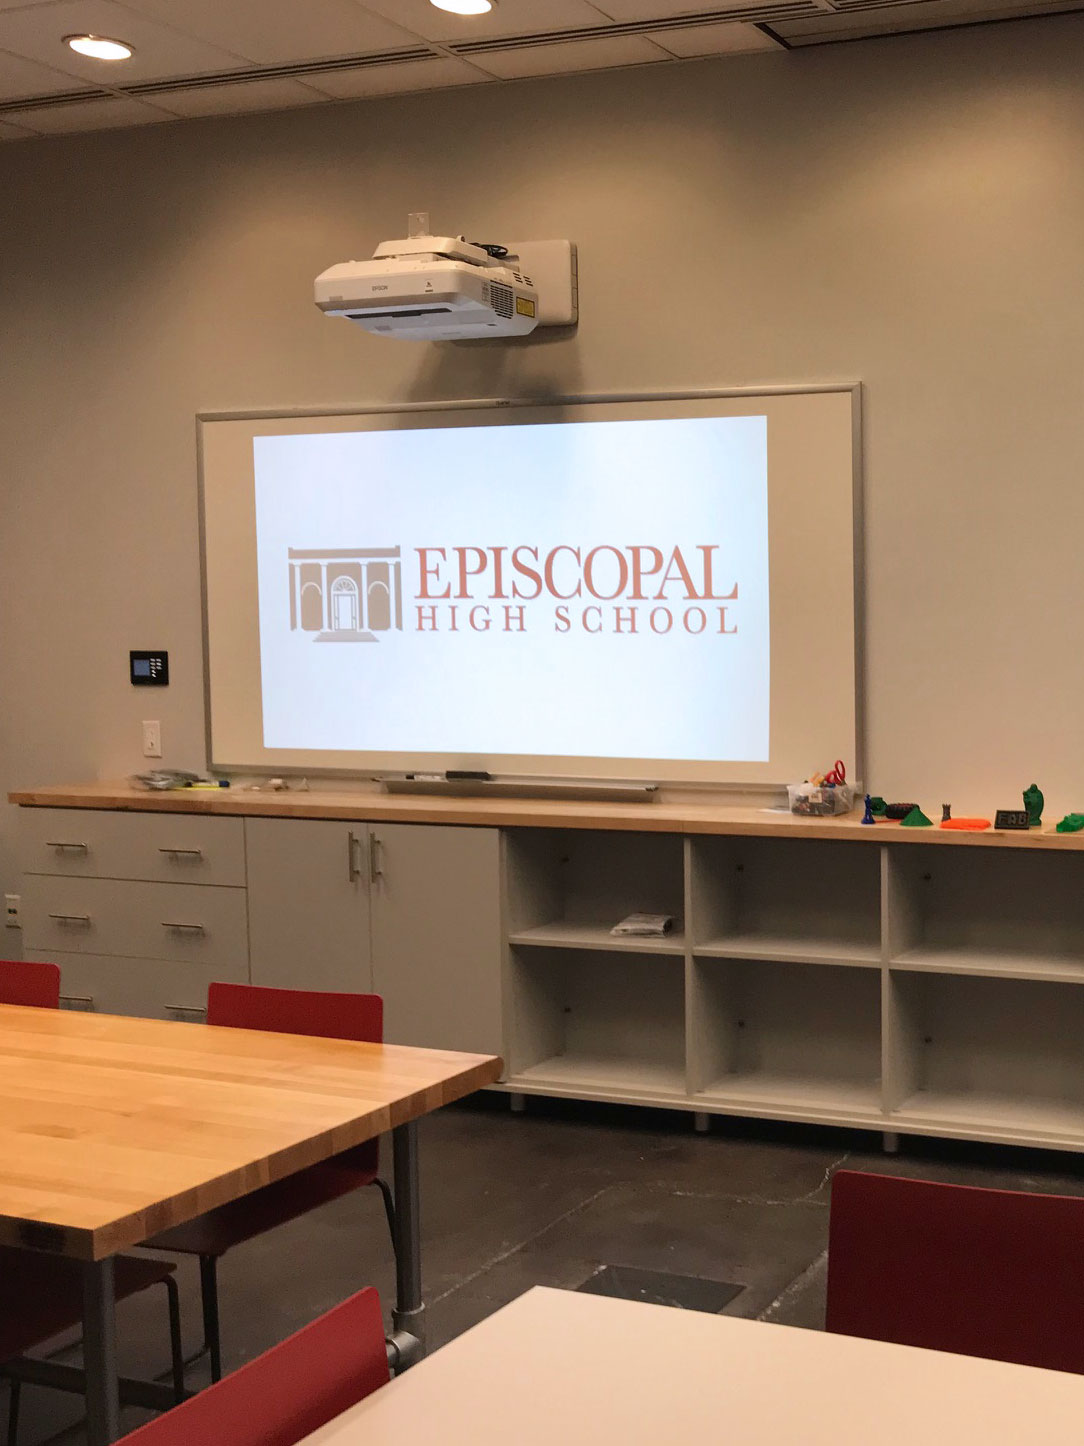 Episcopal High School Robotics Lab Projector